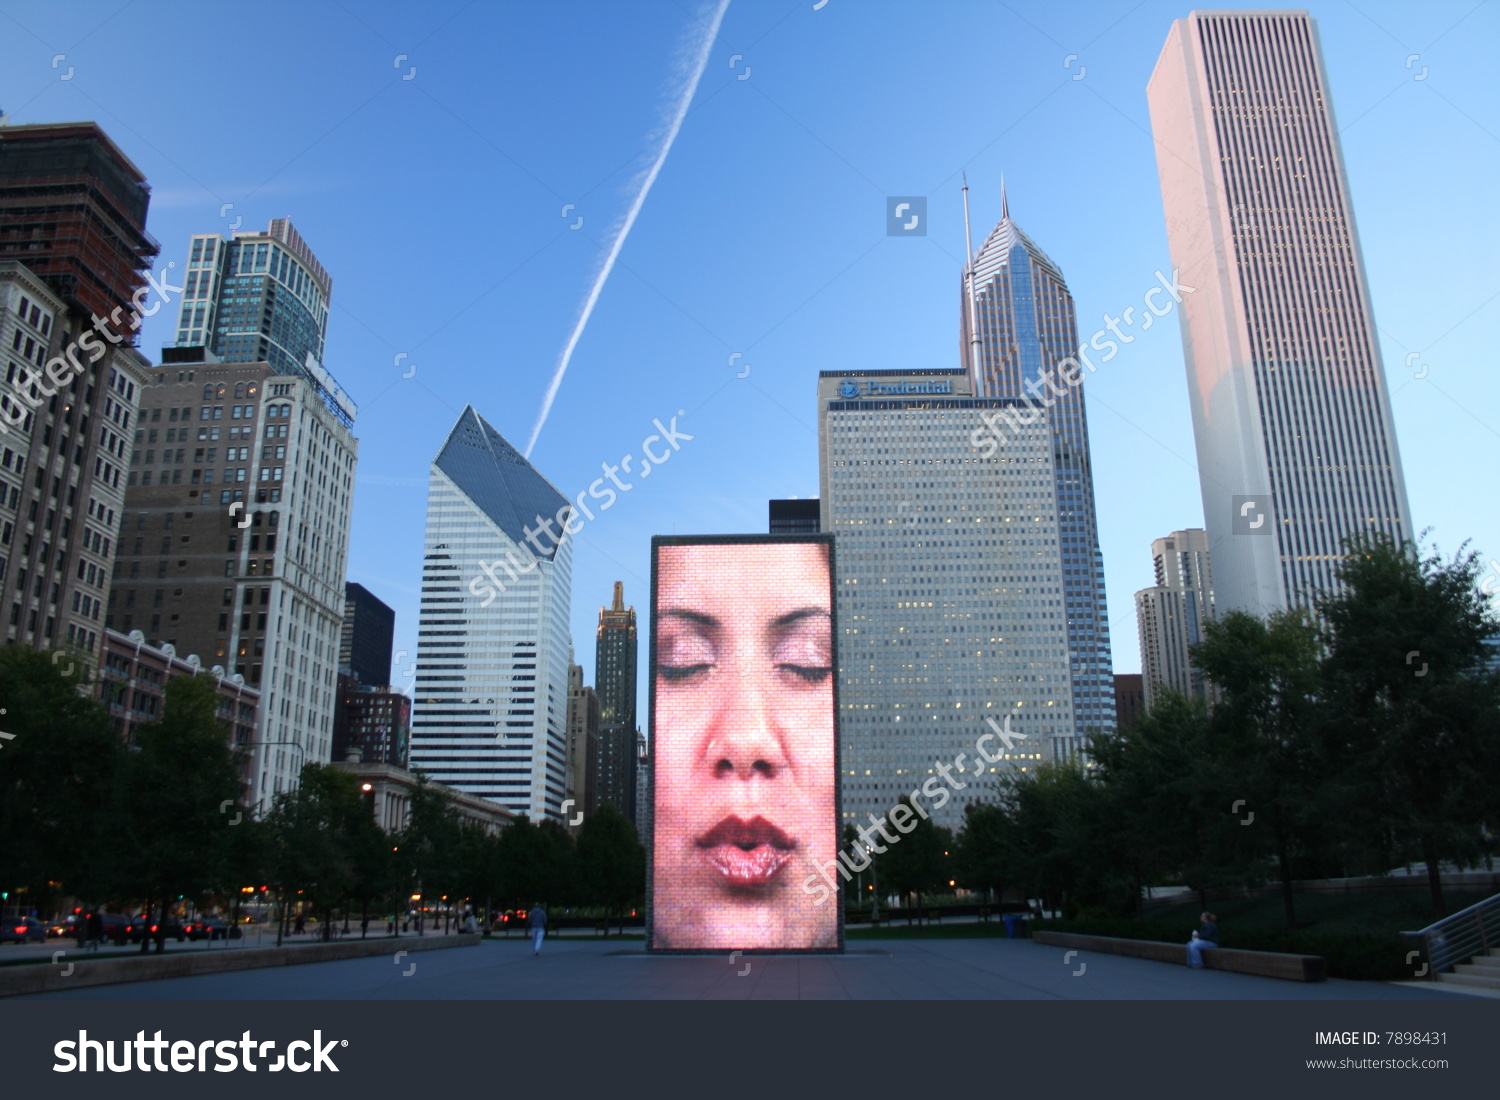 Crown Fountain Sculpture Giant Display Featuring Stock Photo.